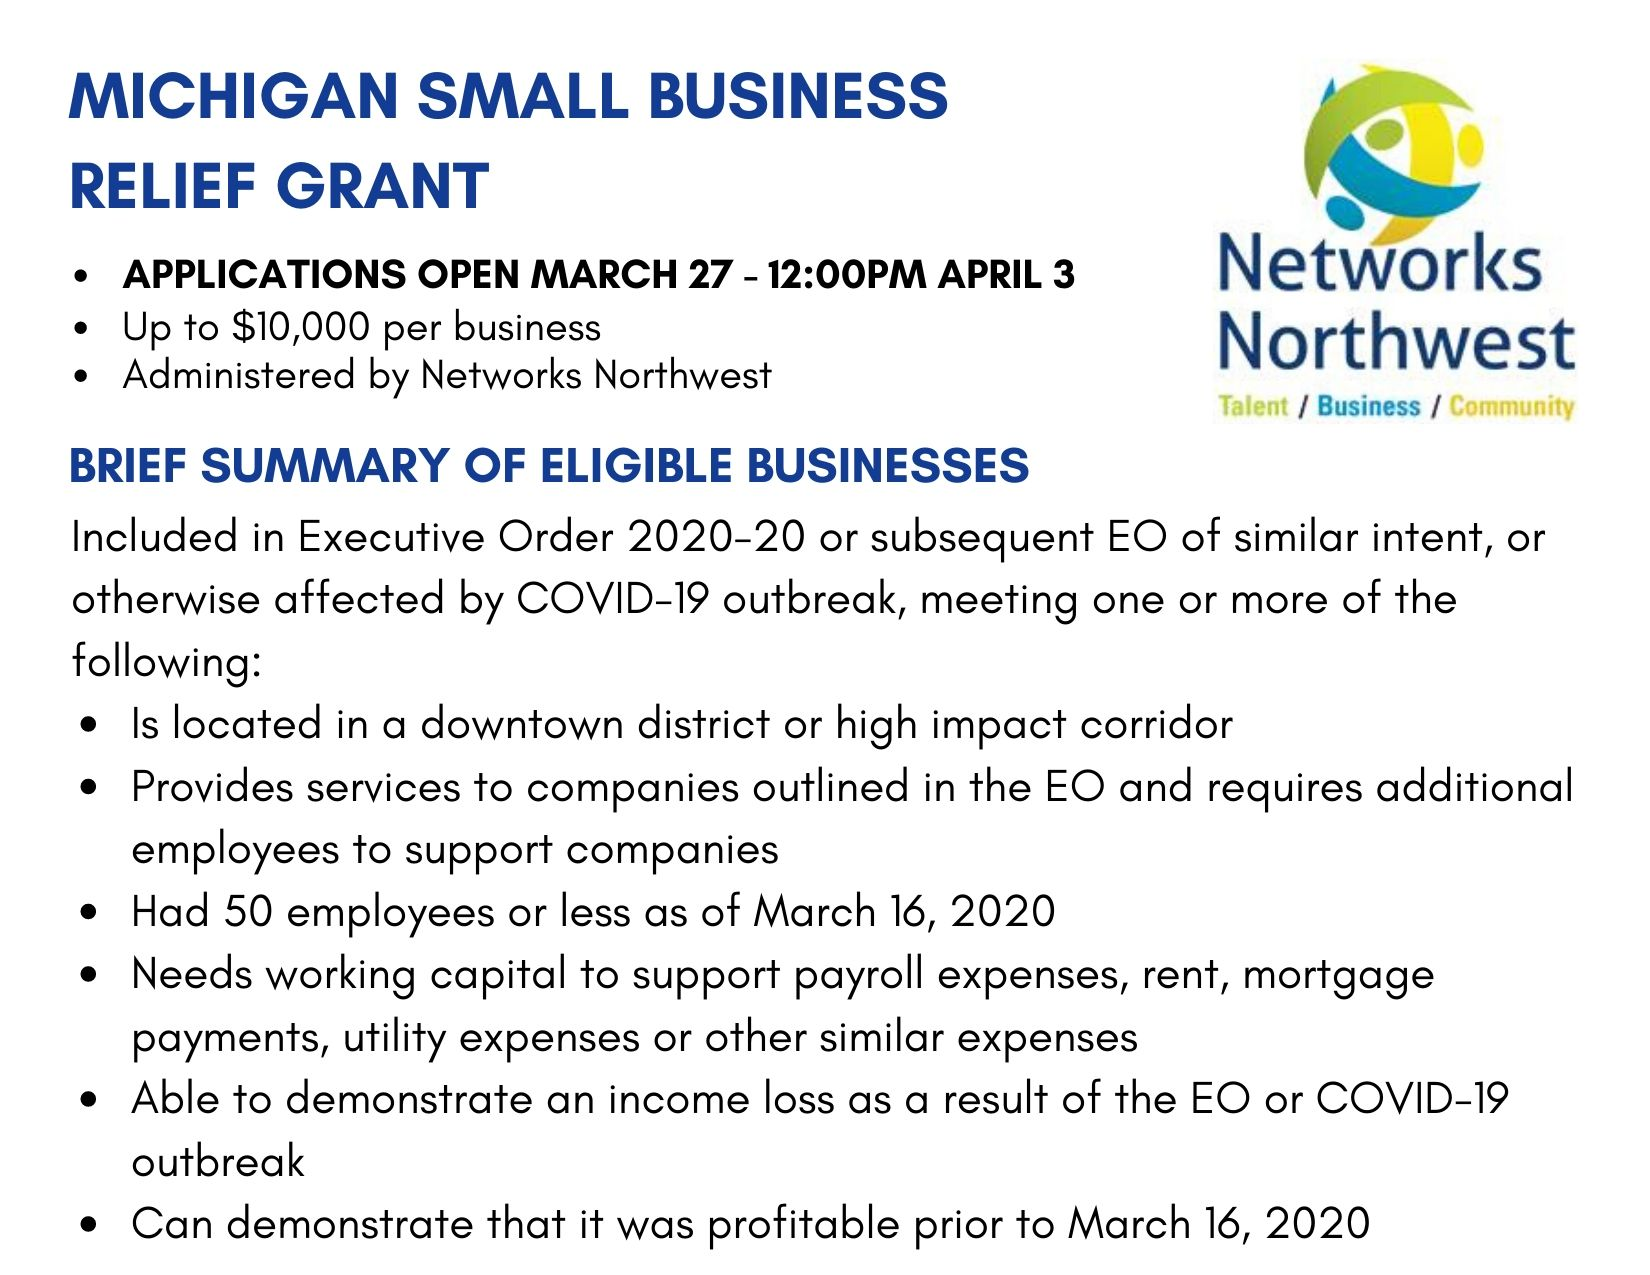 MEDC Small Business Relief